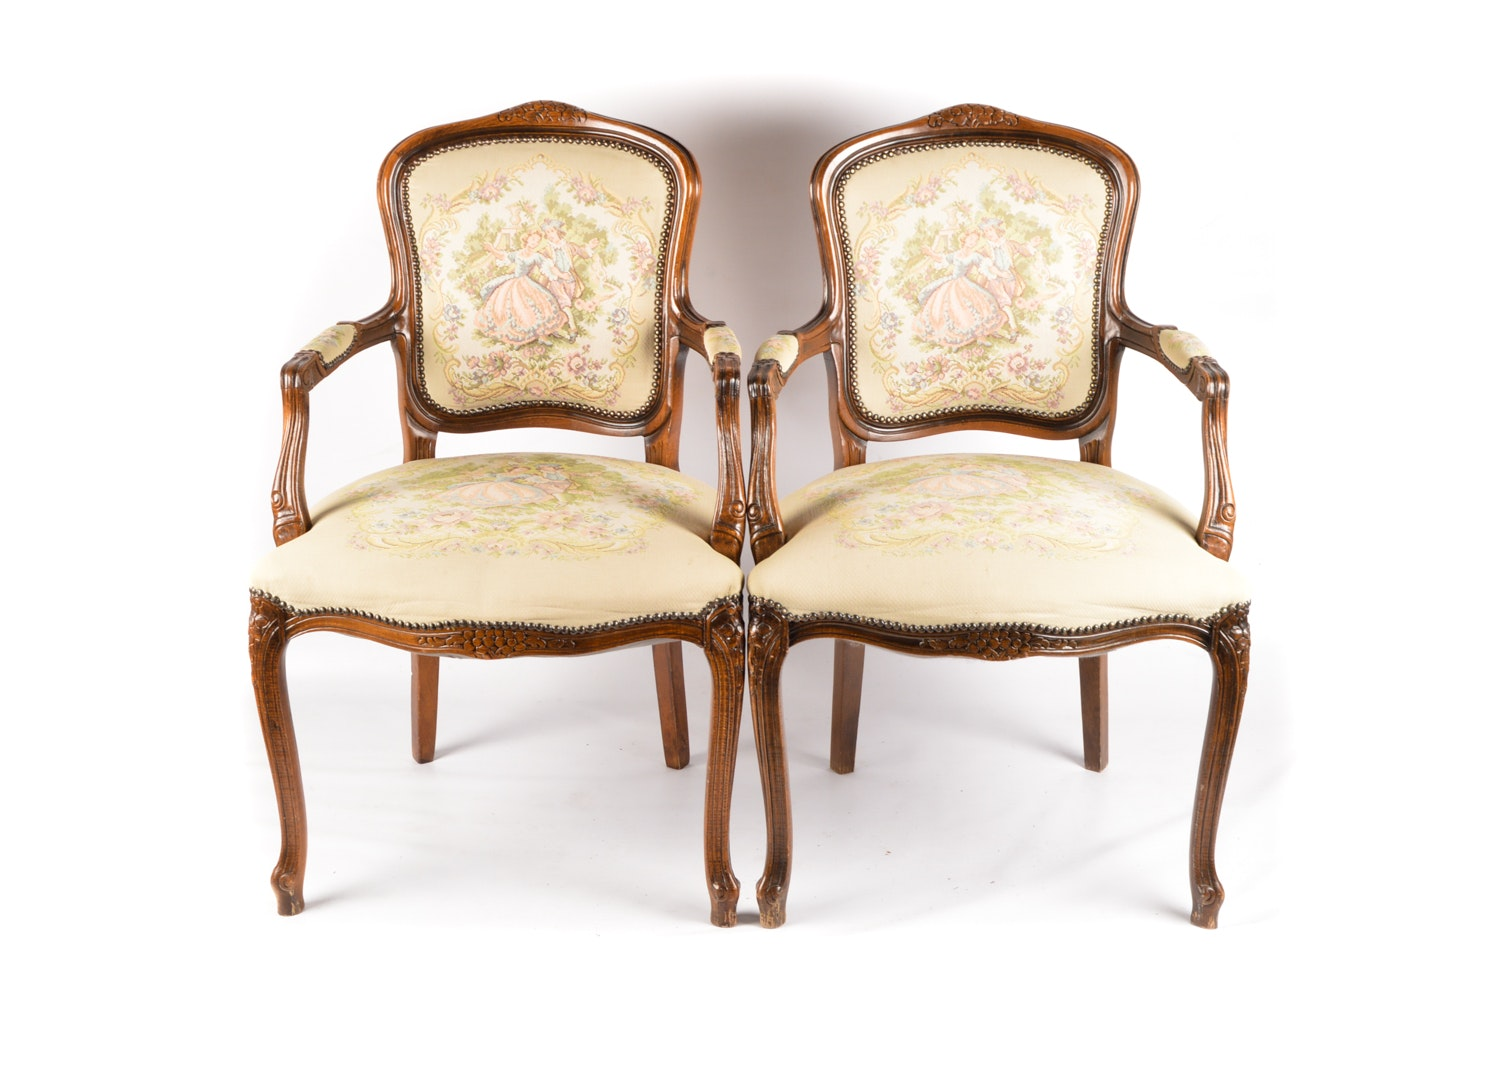 French Provincial Style Carved Walnut Frame Upholstered Armchairs, Late 20th C.